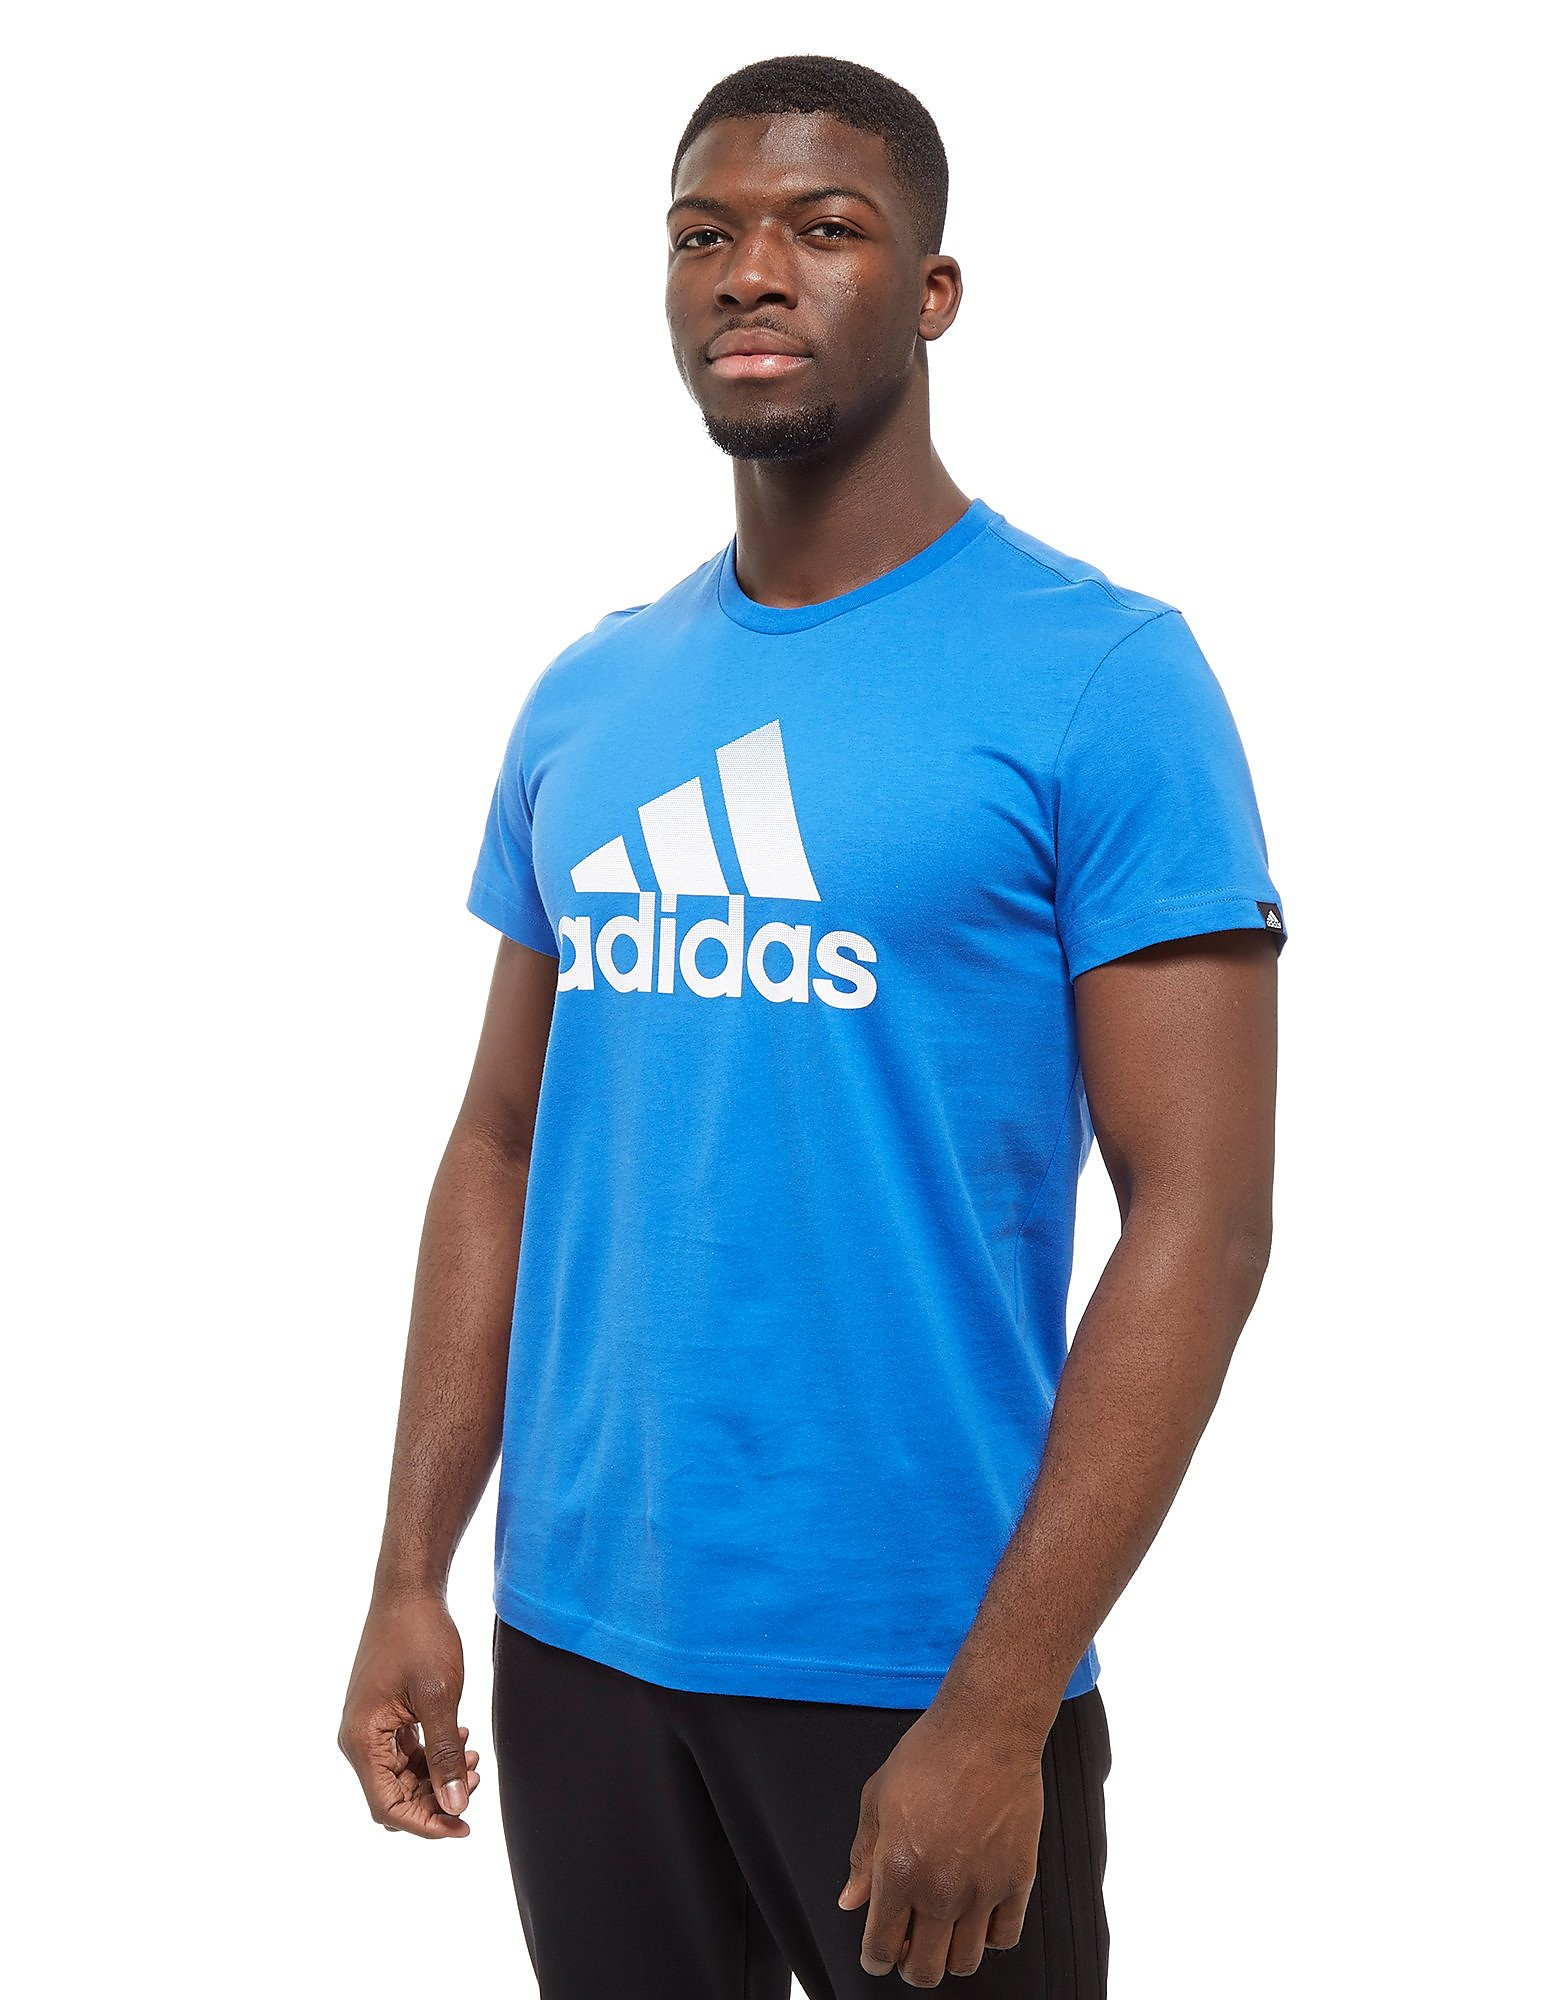 adidas Performance T-Shirt Homme - Only at JD - Blue/White, Blue/White